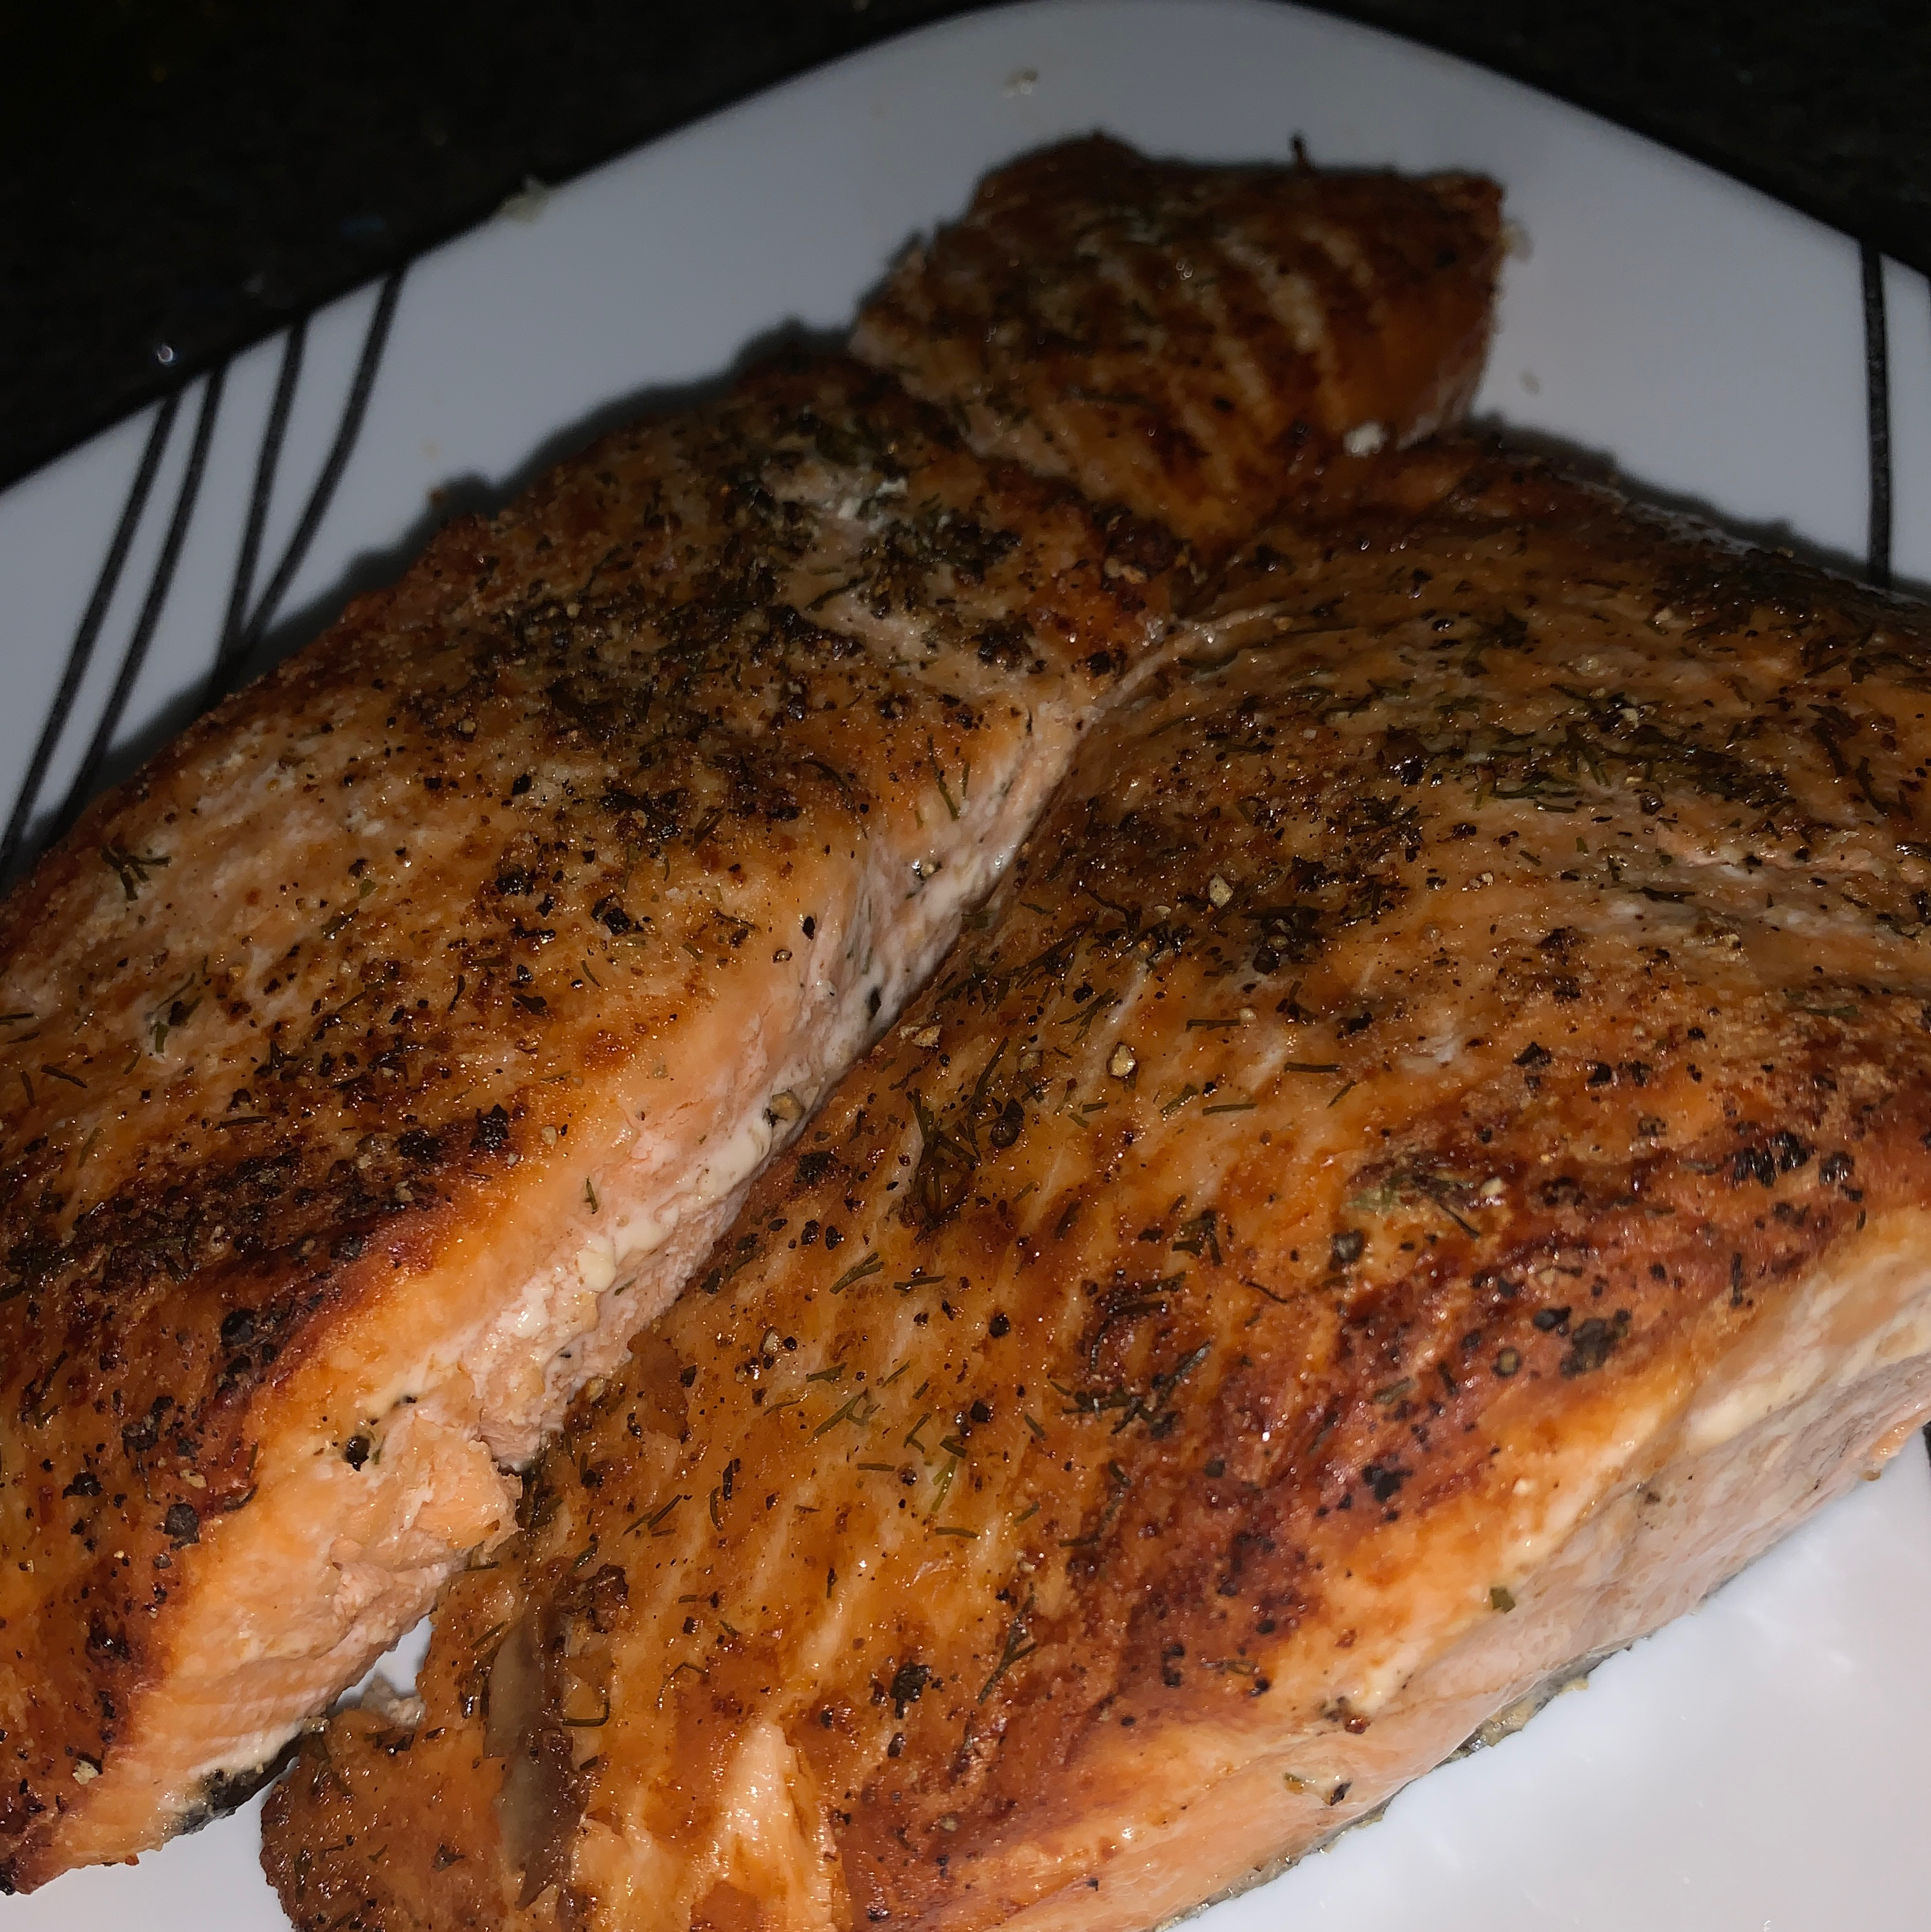 Grilled Salmon with Maple Syrup and Soy Sauce seeaiman